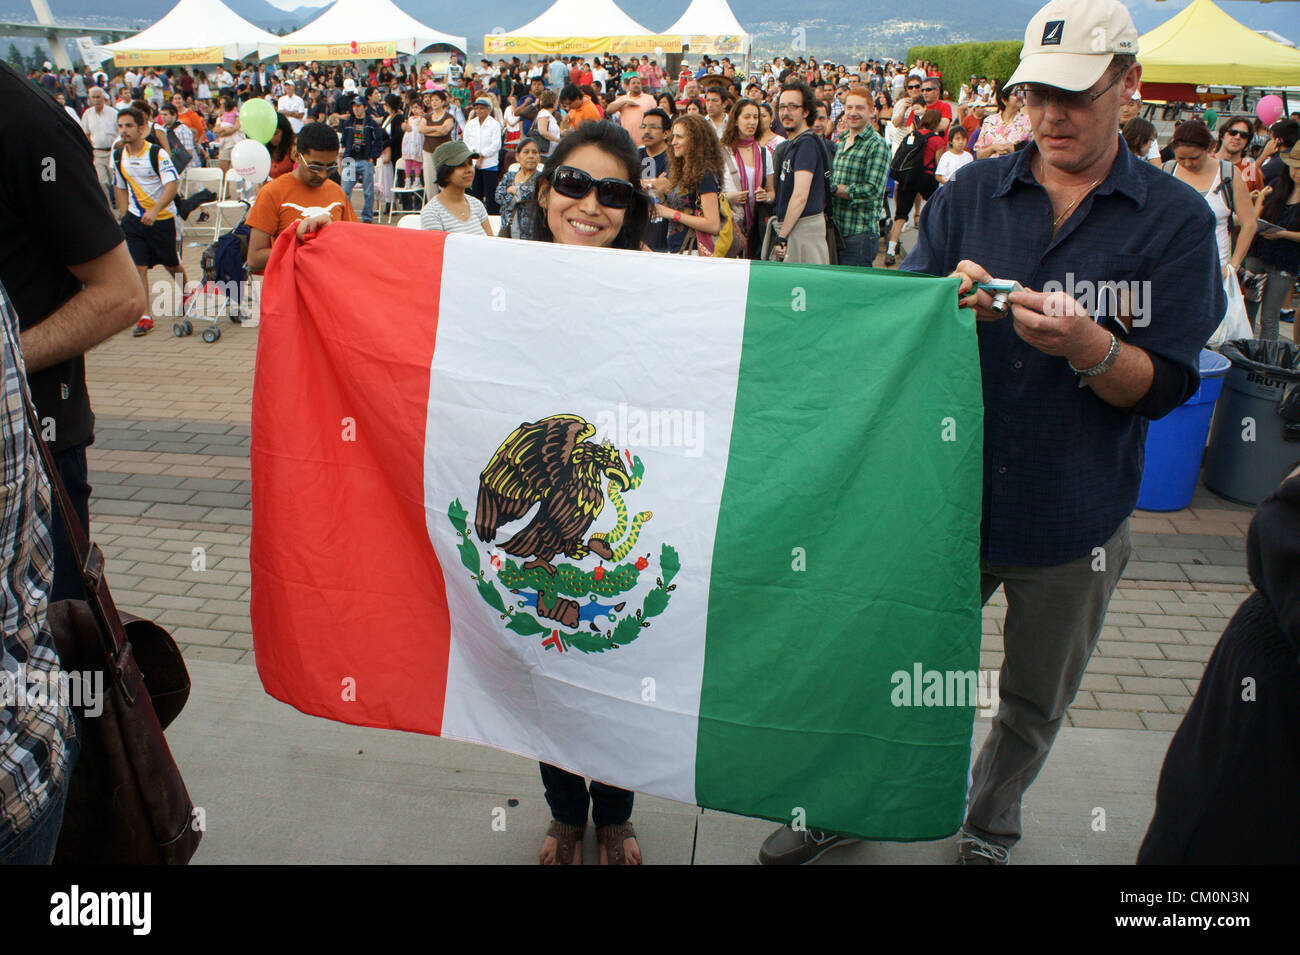 Woman holding up a Mexican flag at the Mexico Fest Mexican independence day celebrations in Vancouver, British Columbia, - Stock Image